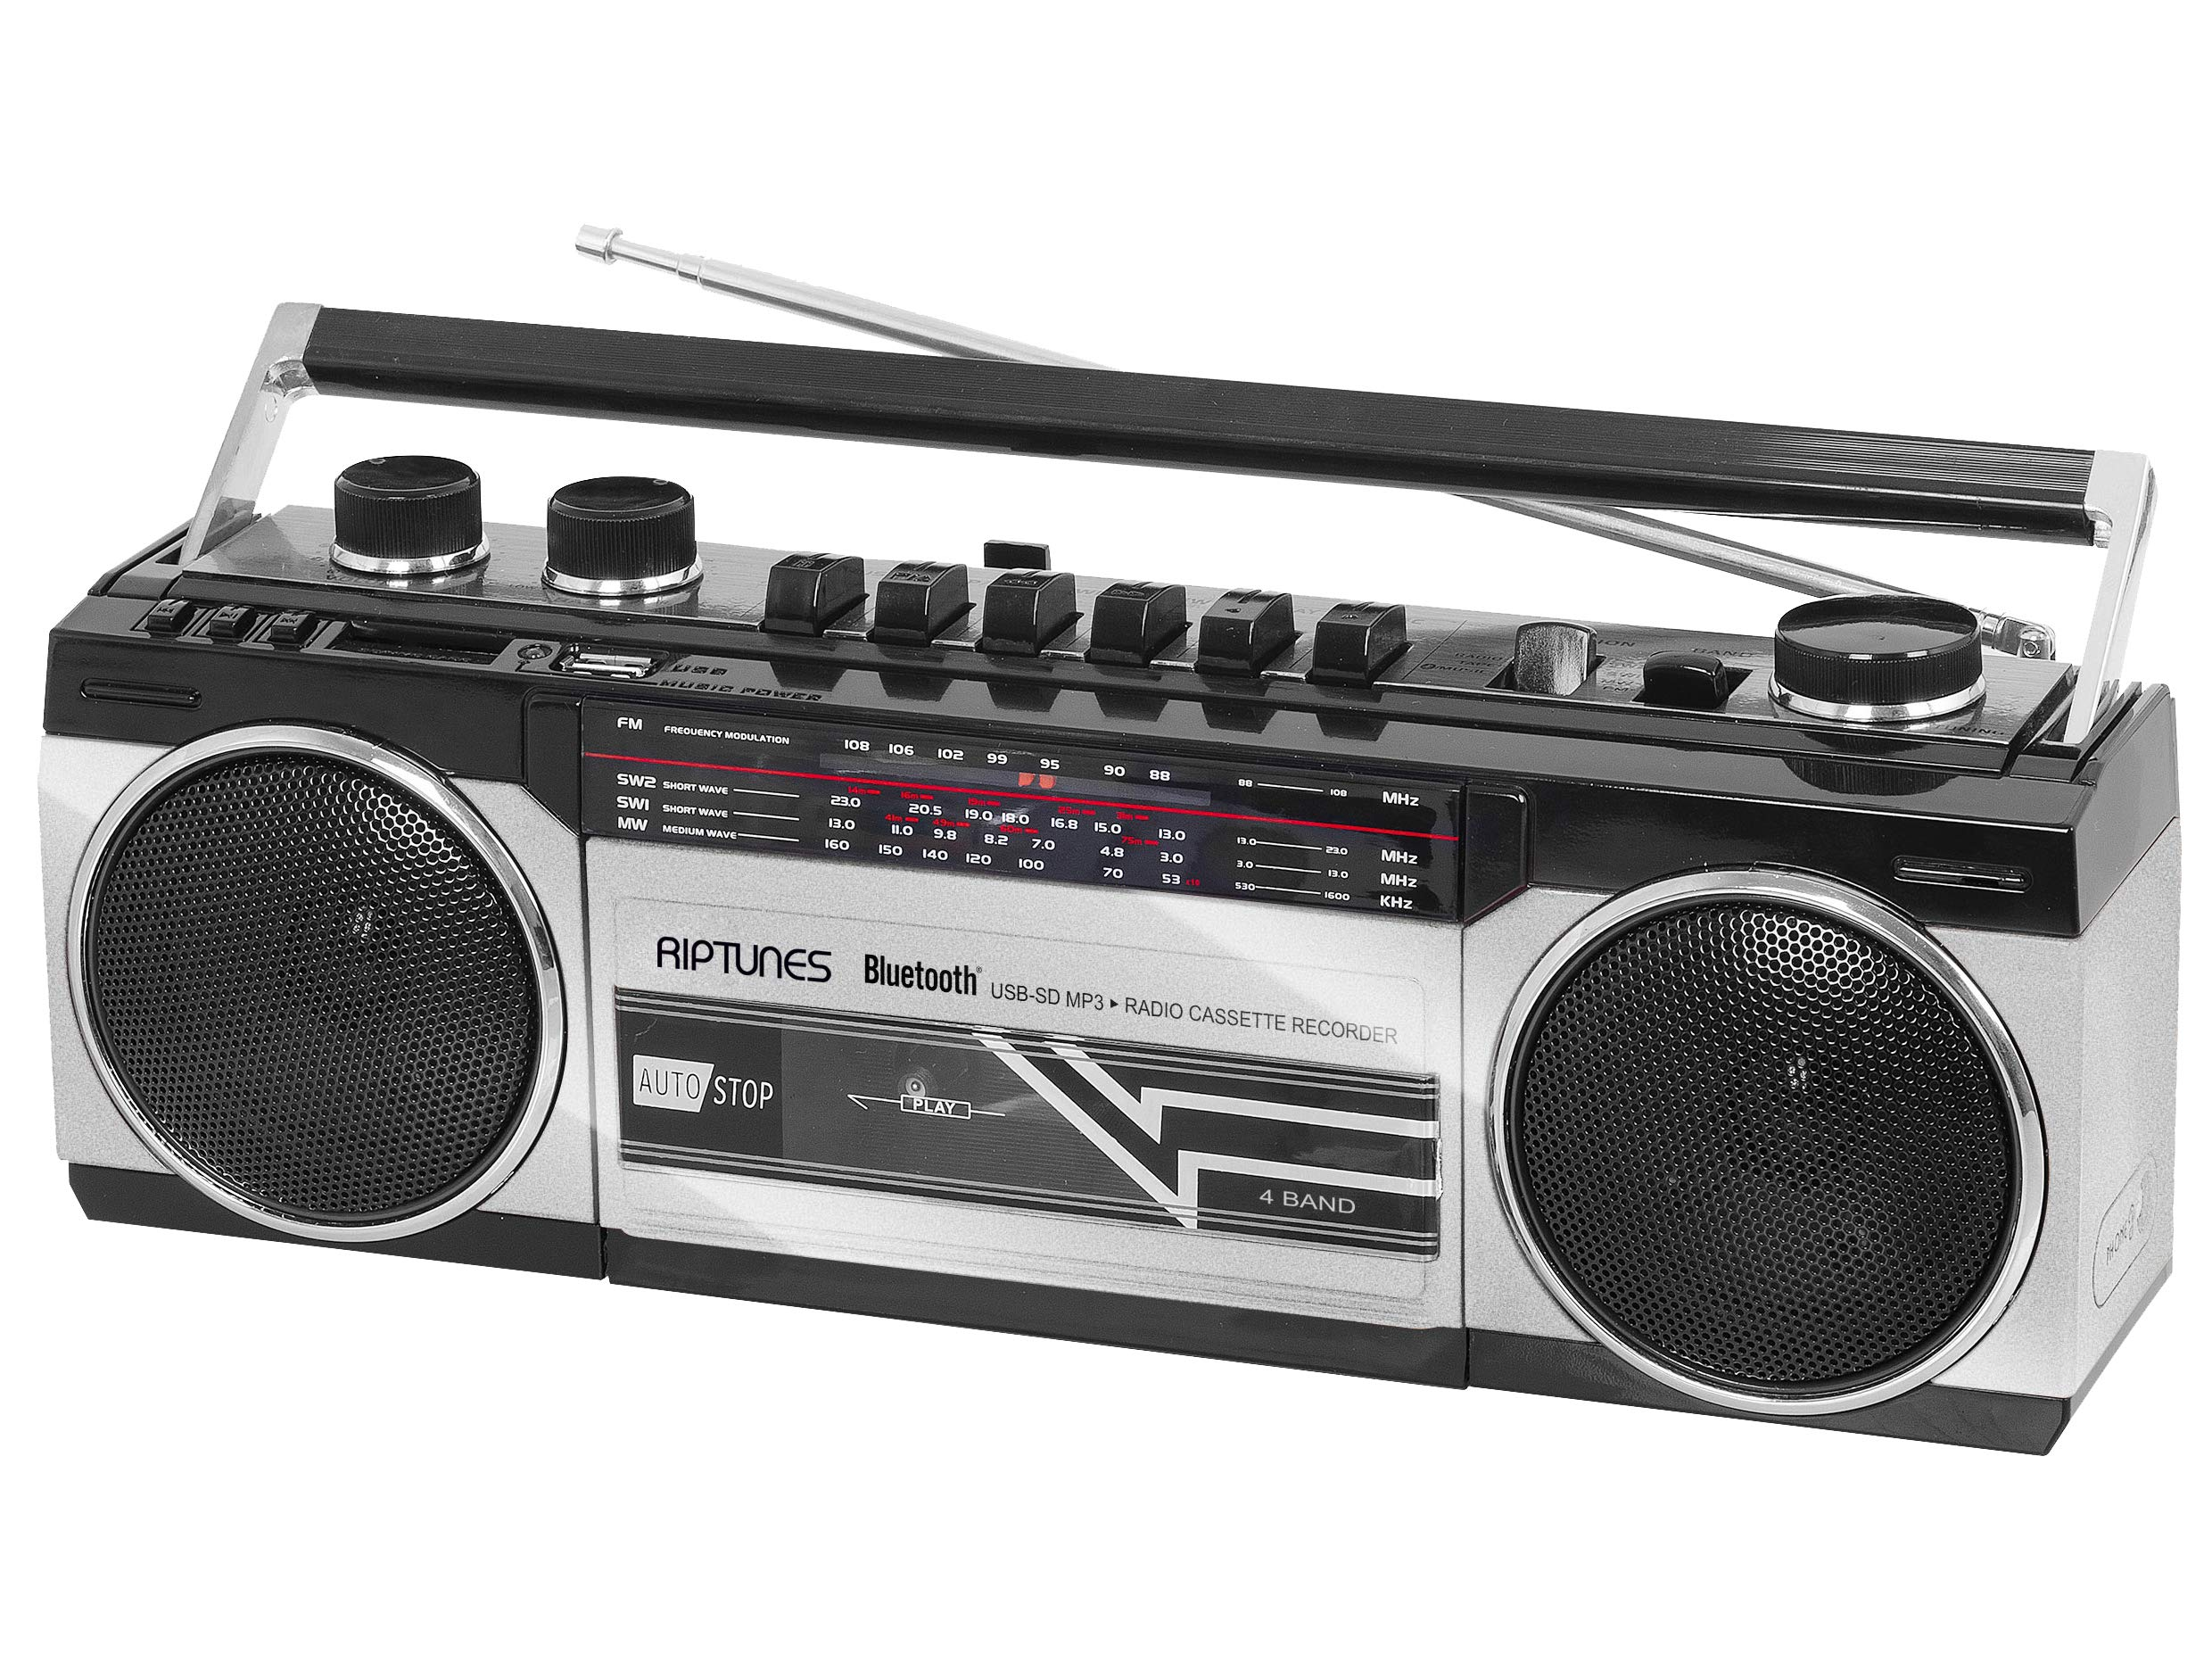 Riptunes Cassette Boombox, Retro Blueooth Boombox, Cassette Player and Recorder, AM/FM/ SW-1-SW2 Radio-4-Band Radio, USB, SD, Headphone Jack, Silver